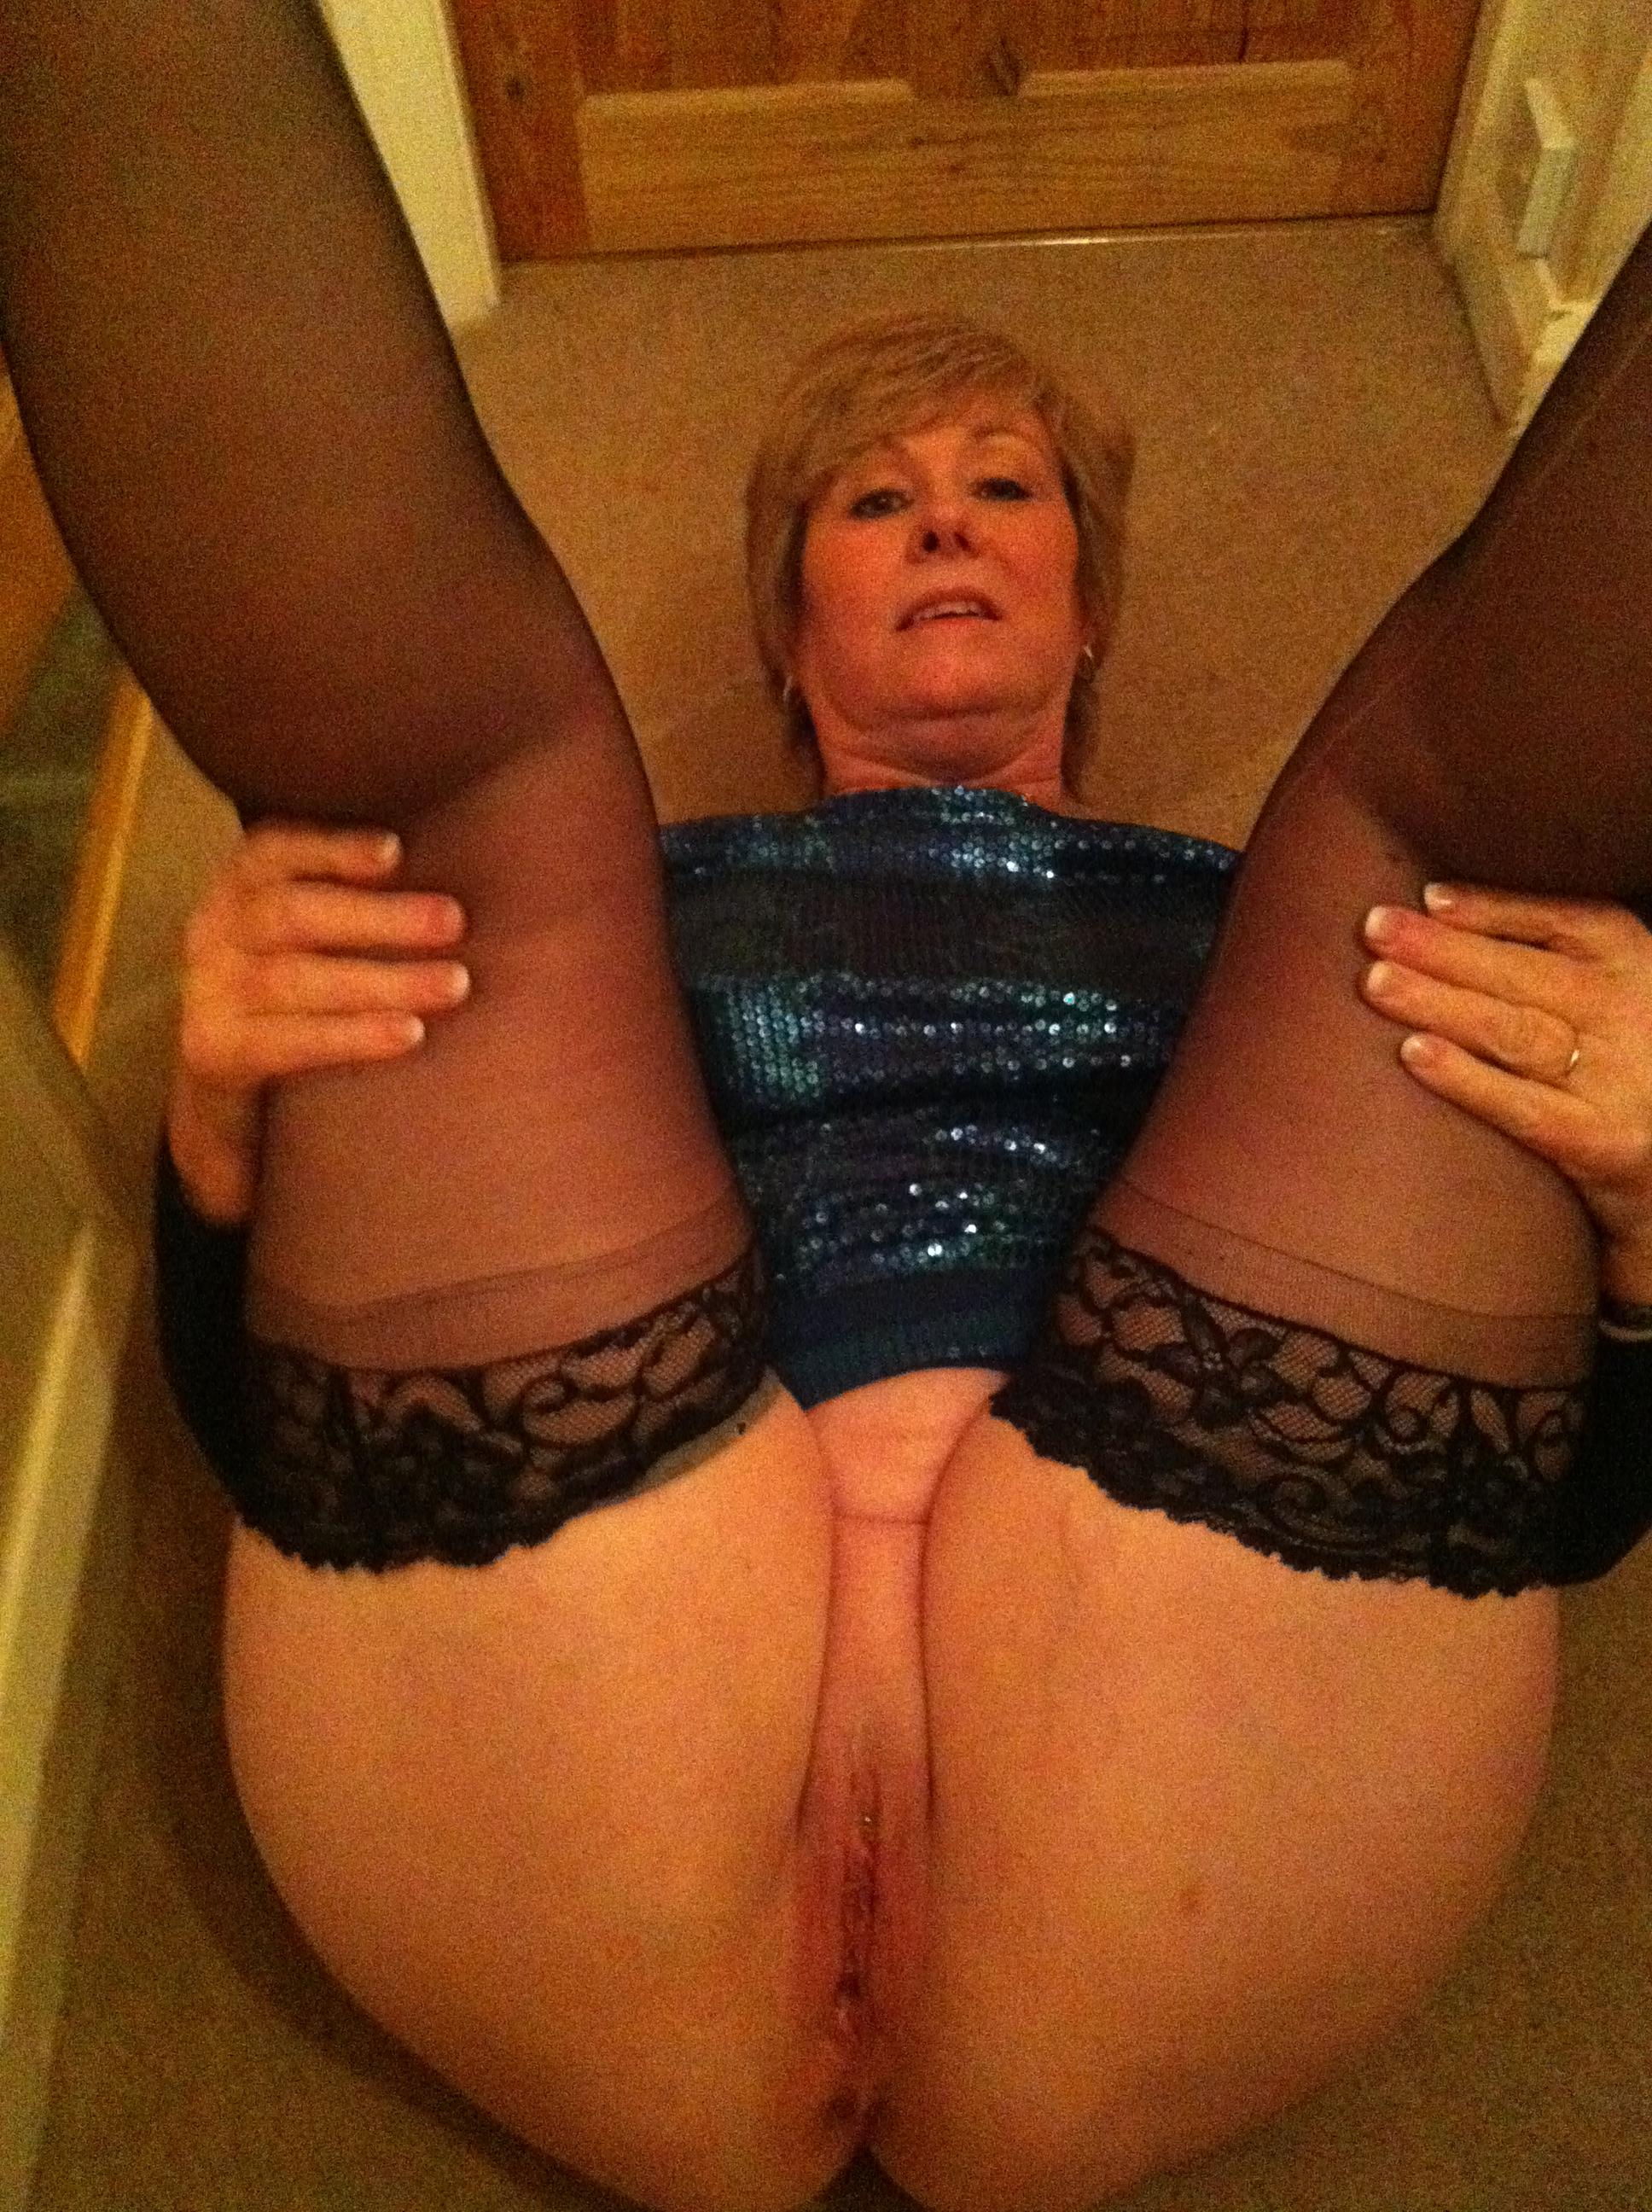 Seems remarkable Striptease sexy old grannies remarkable, rather